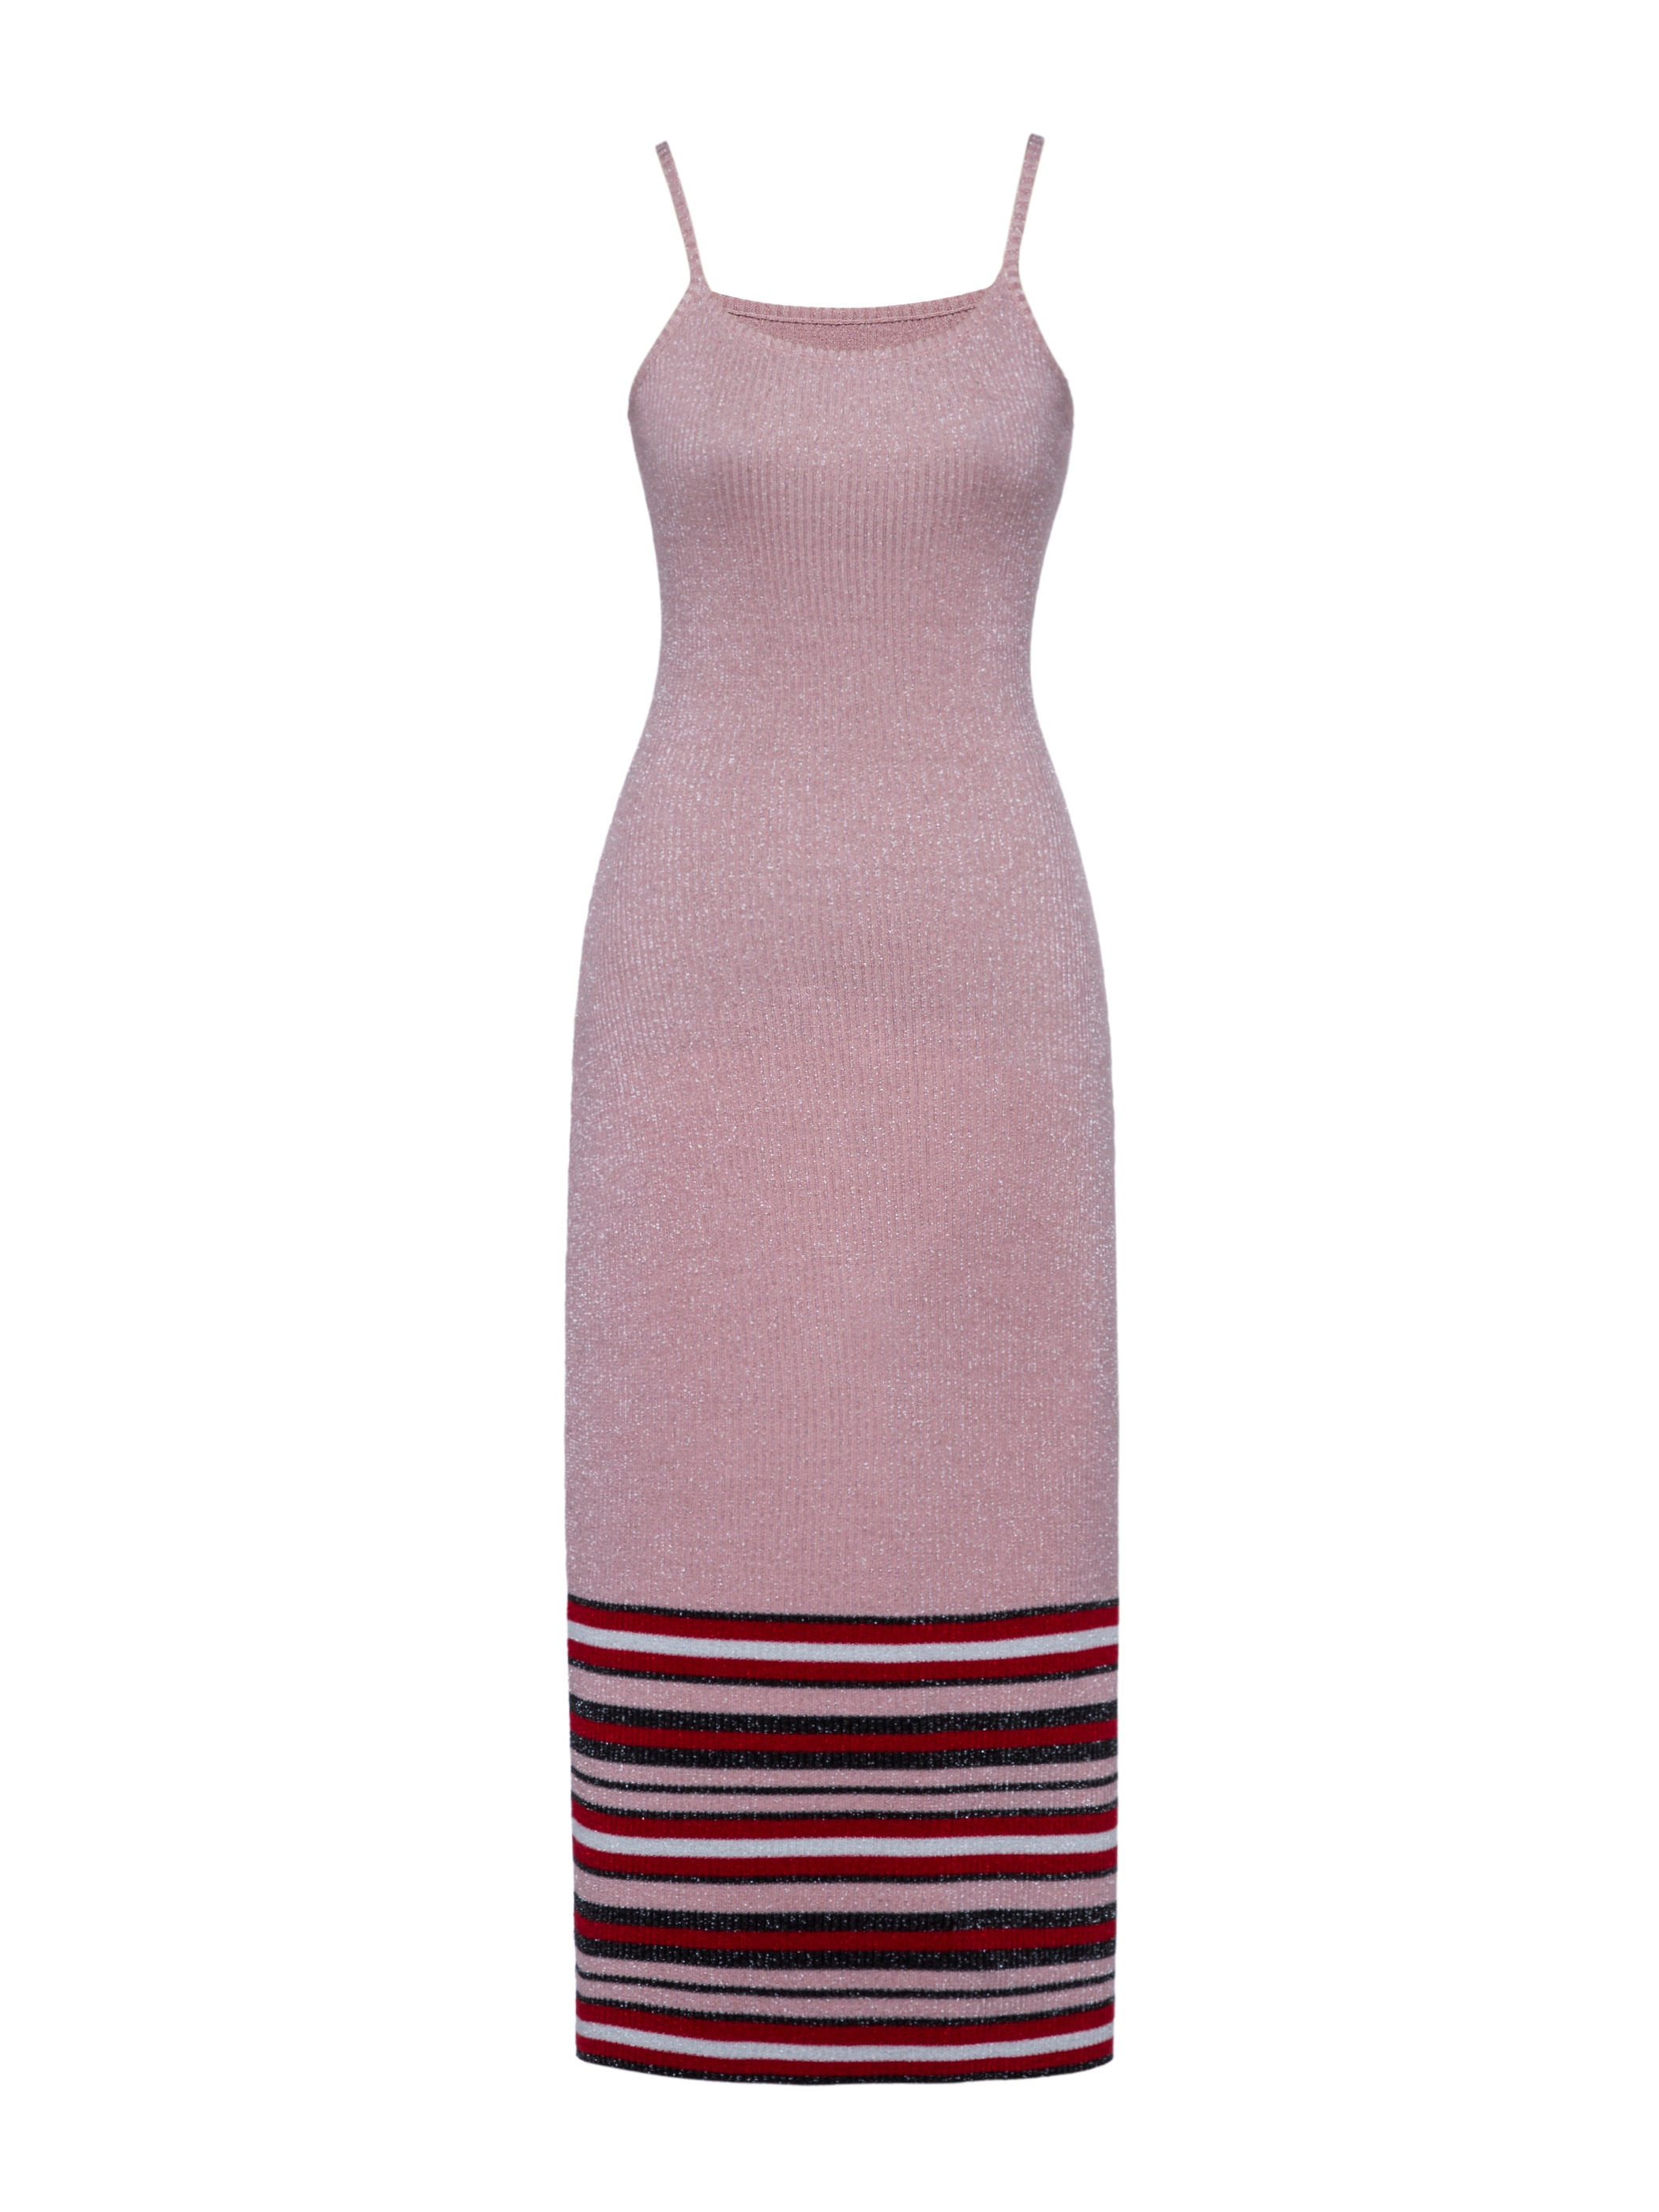 Ericdress Spaghetti Strap Color Block Stripe Sweater Dress